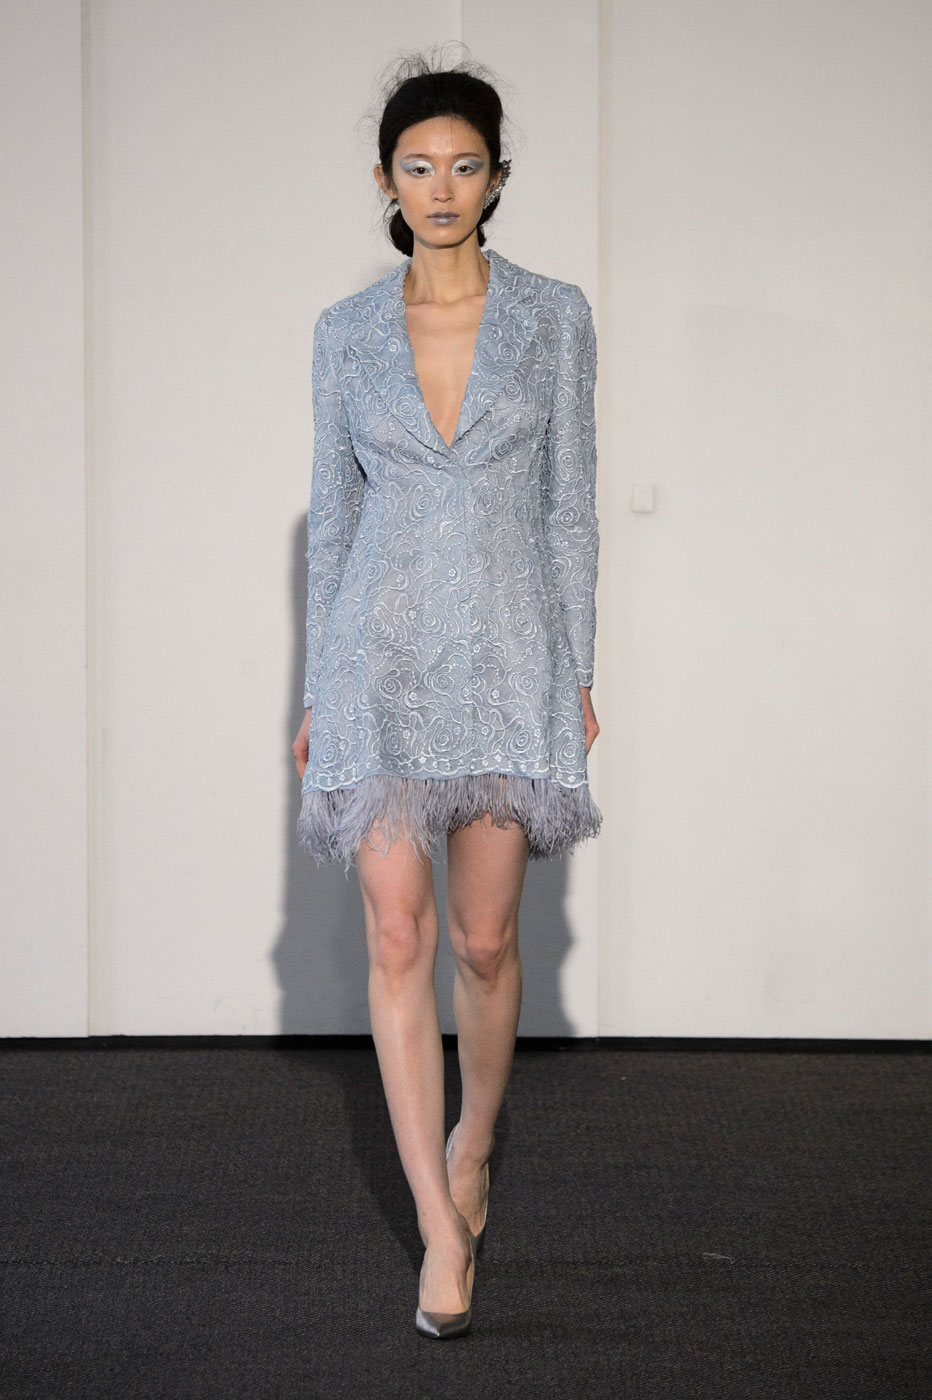 Busardi-fashion-runway-show-haute-couture-paris-spring-2015-the-impression-01